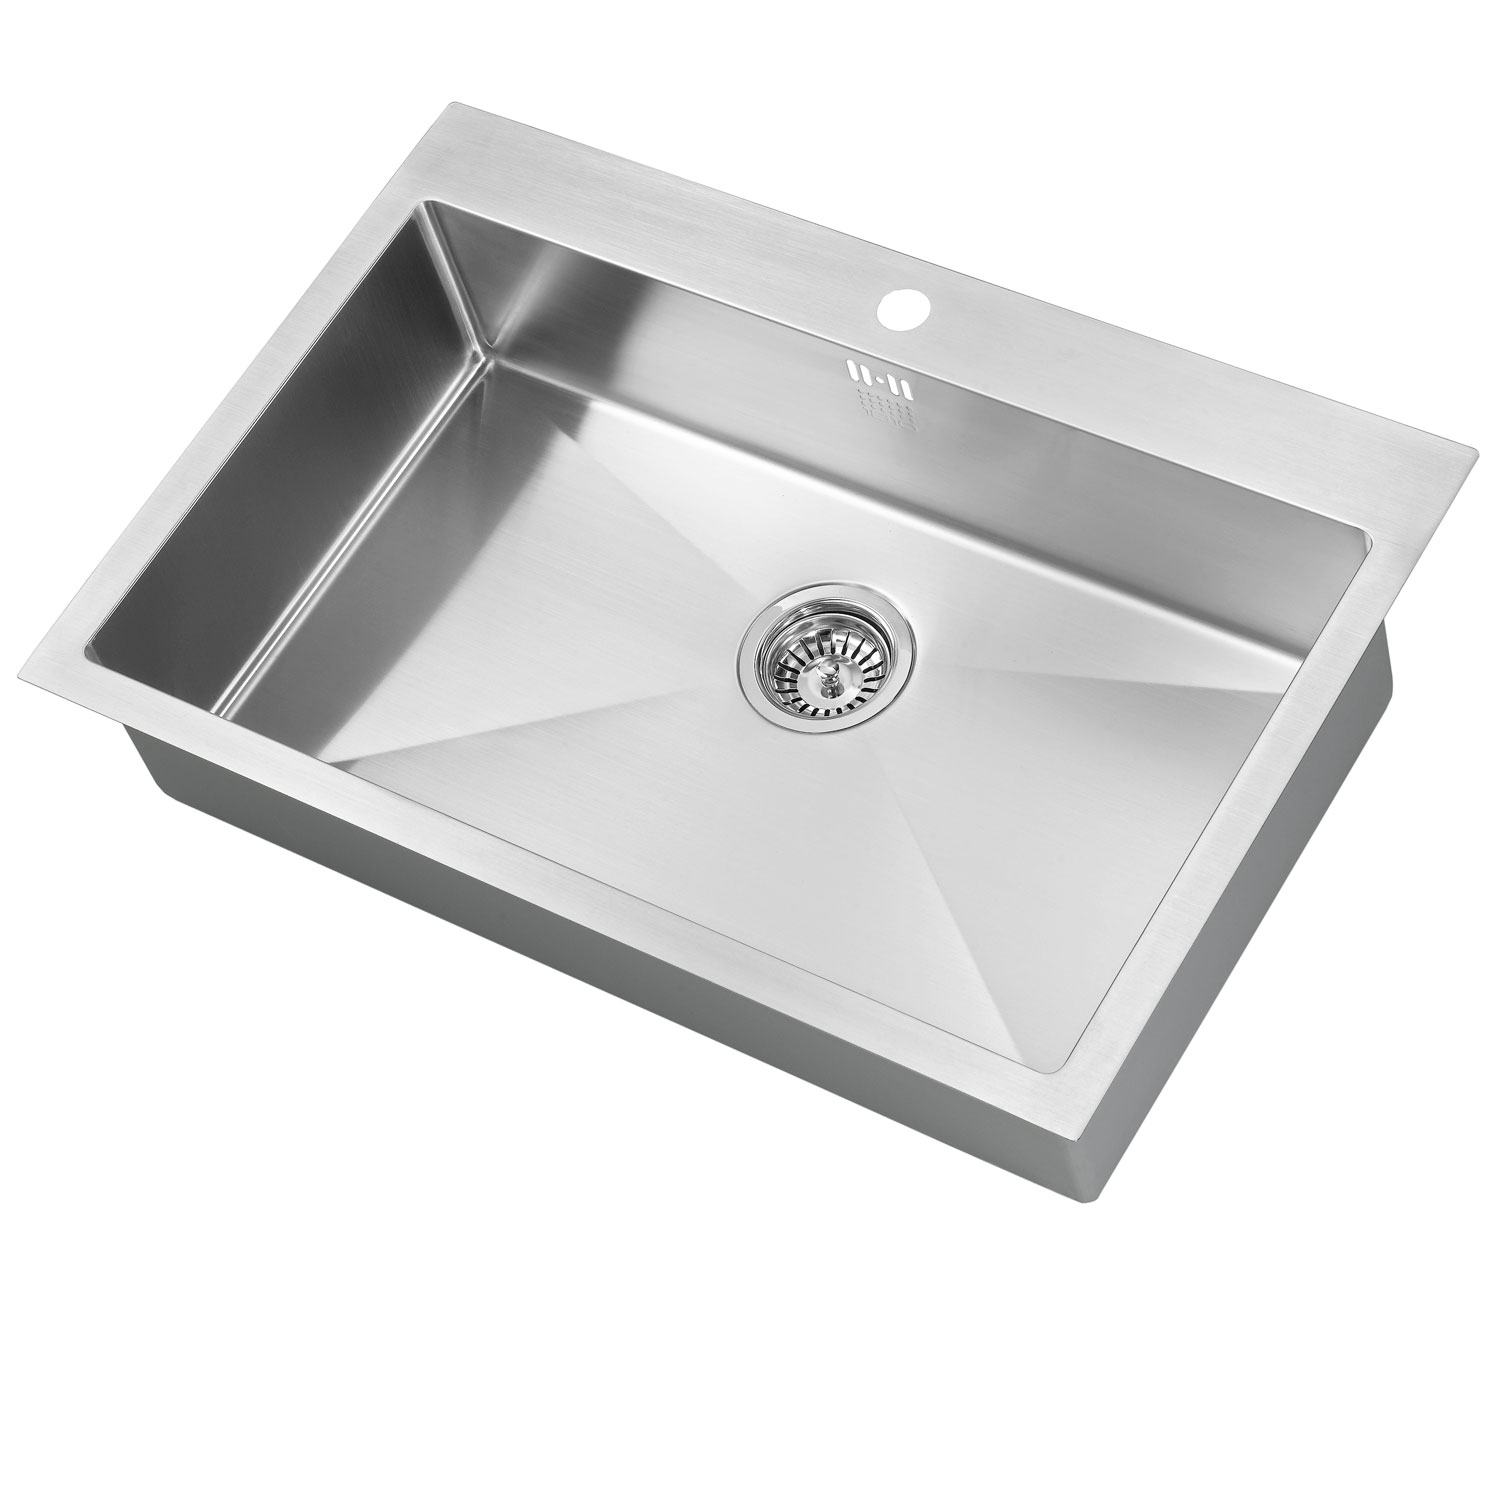 The 1810 Company Zenuno15 70 I-F 1.0 Bowl Kitchen Sink - Stainless Steel-0